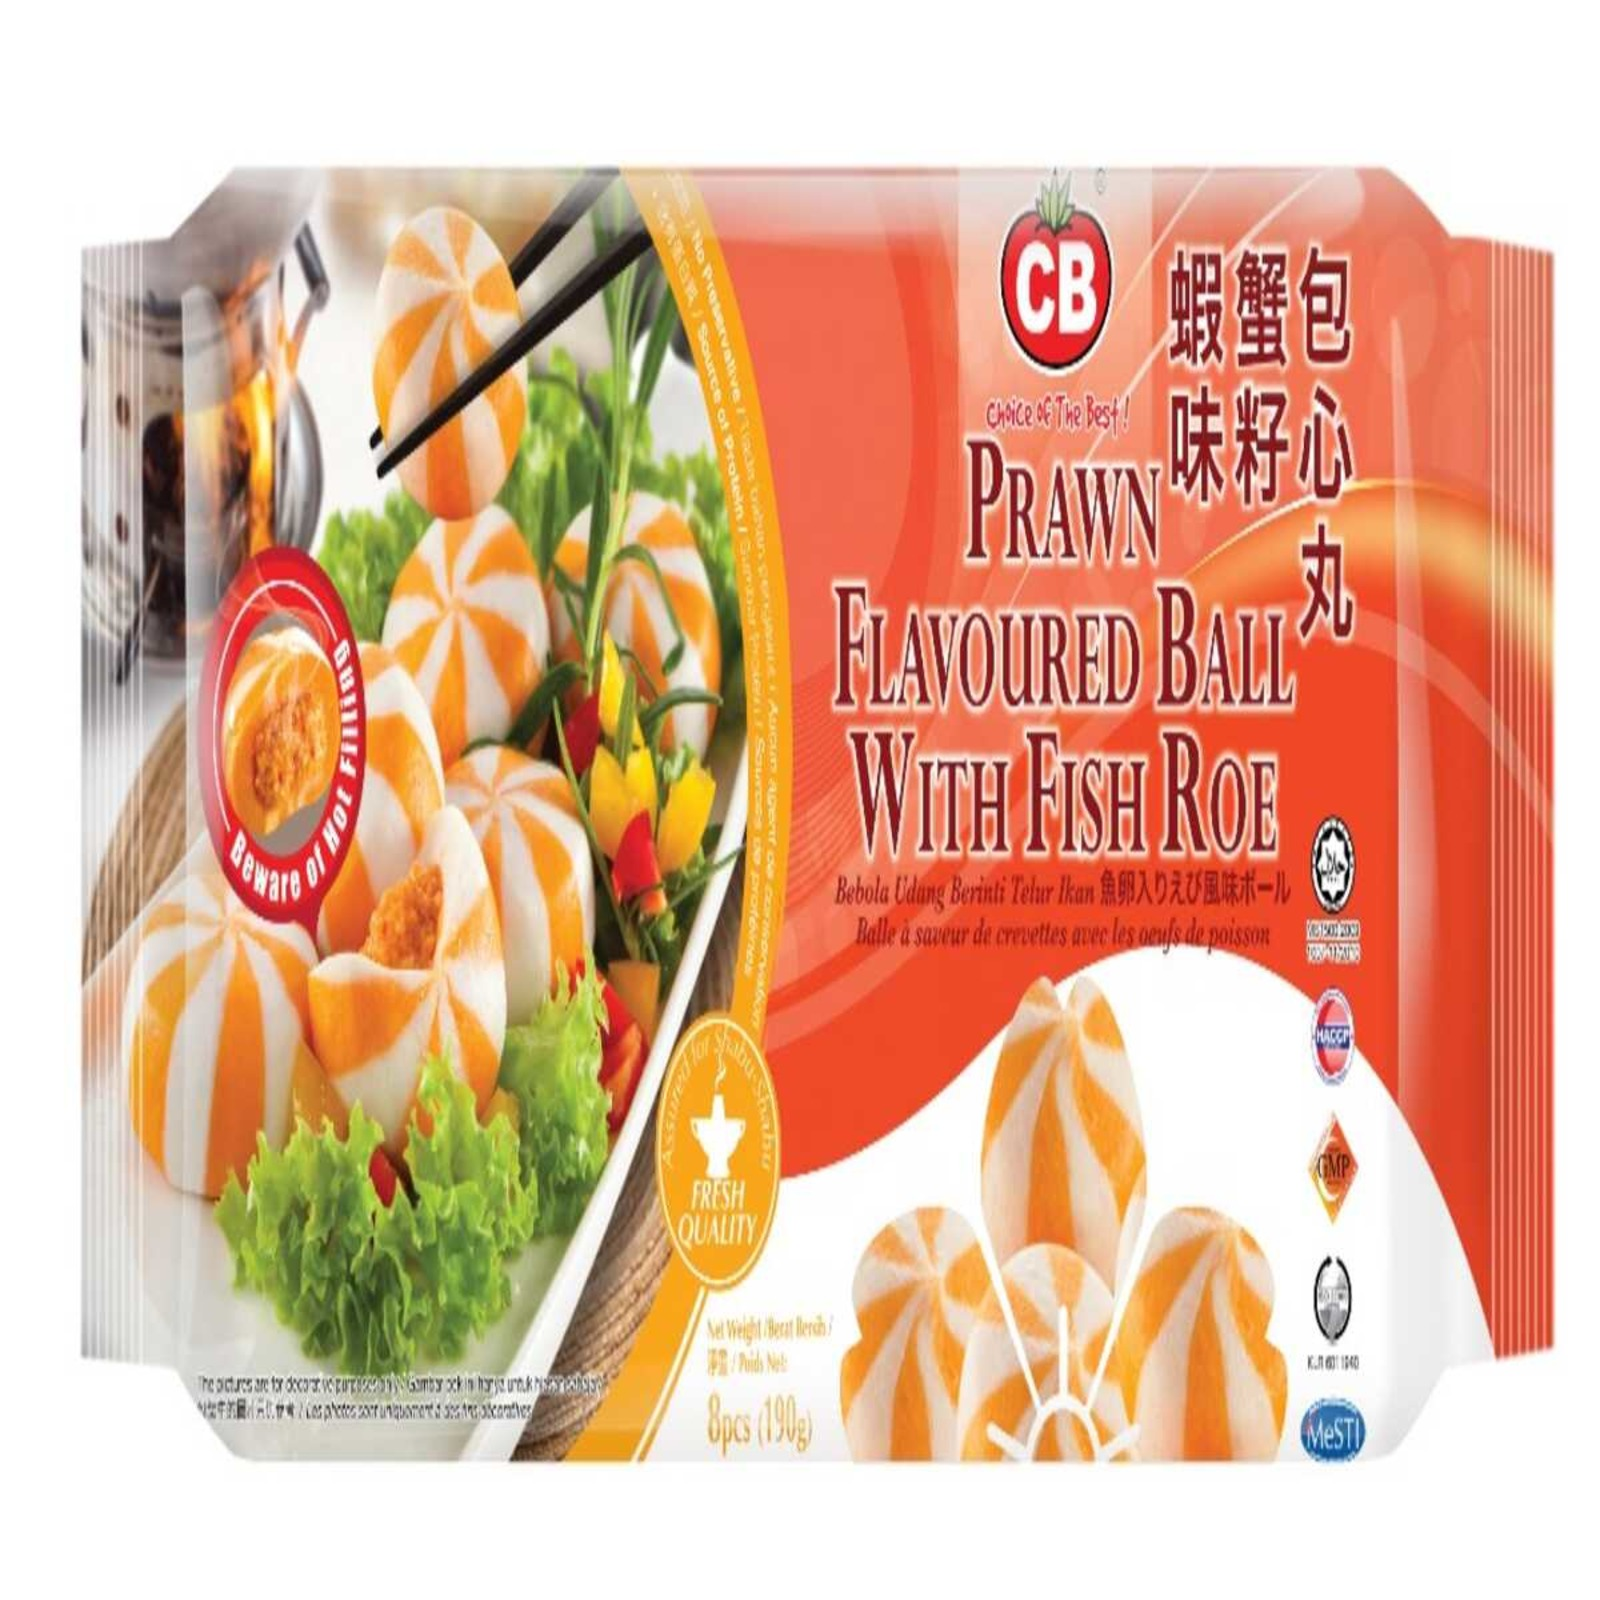 CB Prawn Flavoured Ball With Fish Roe 8Pcs